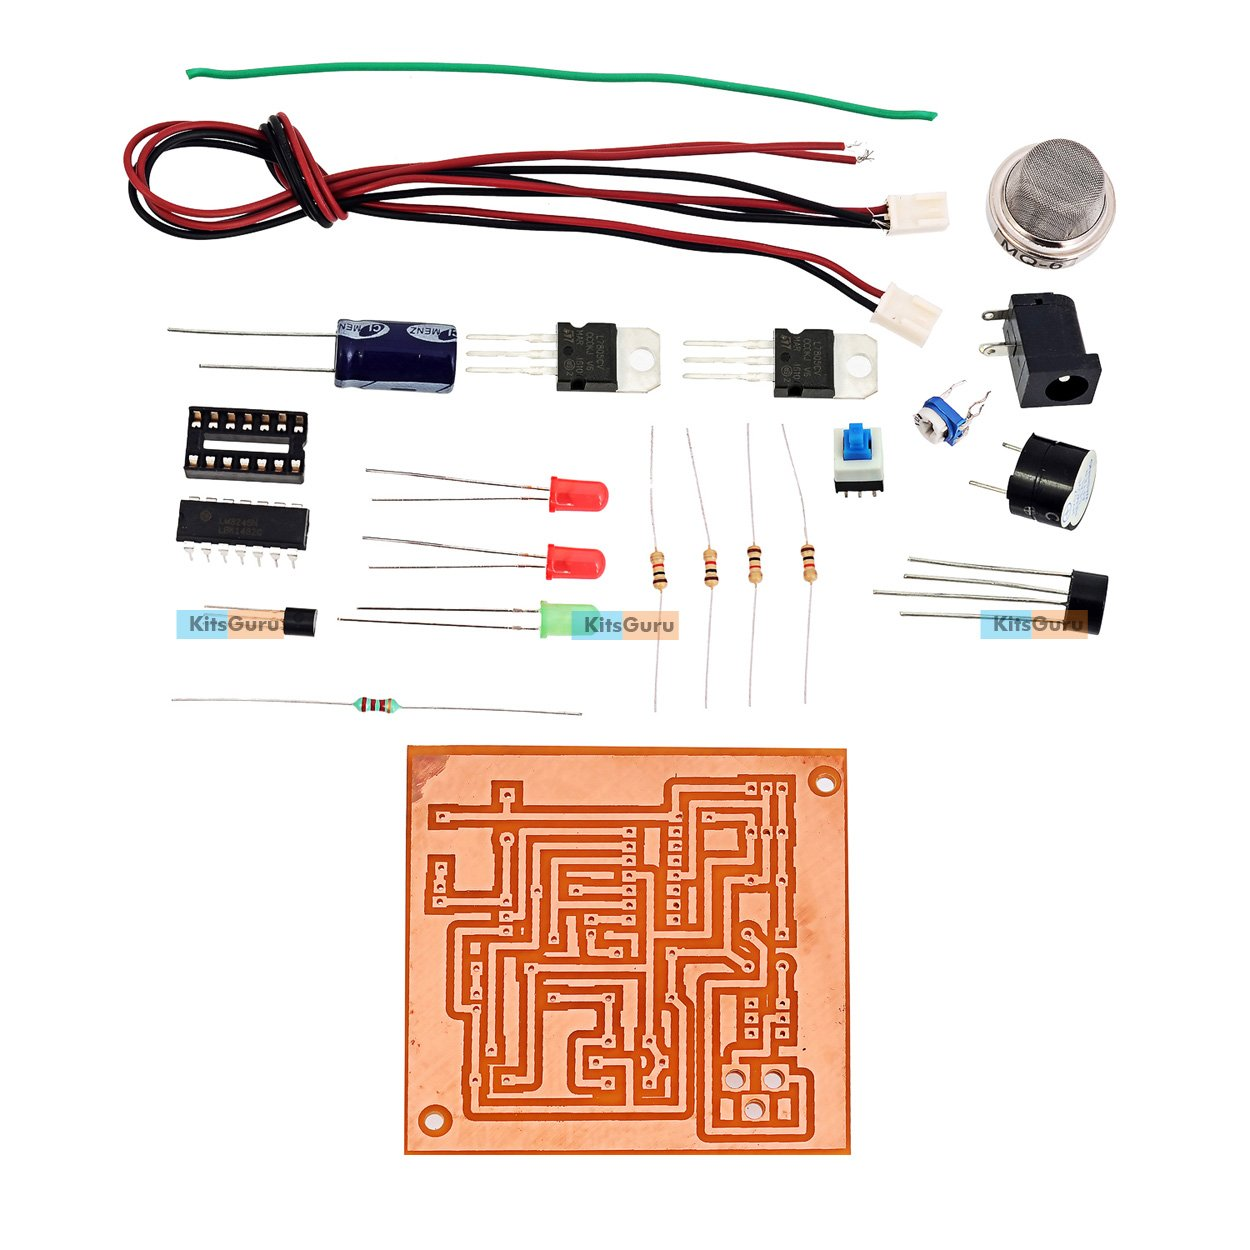 Diy Kit Gas Leakage Detection Alarm Lgkt012 Digital Circuits The Lm324 Quad Comparator Circuit Images Frompo